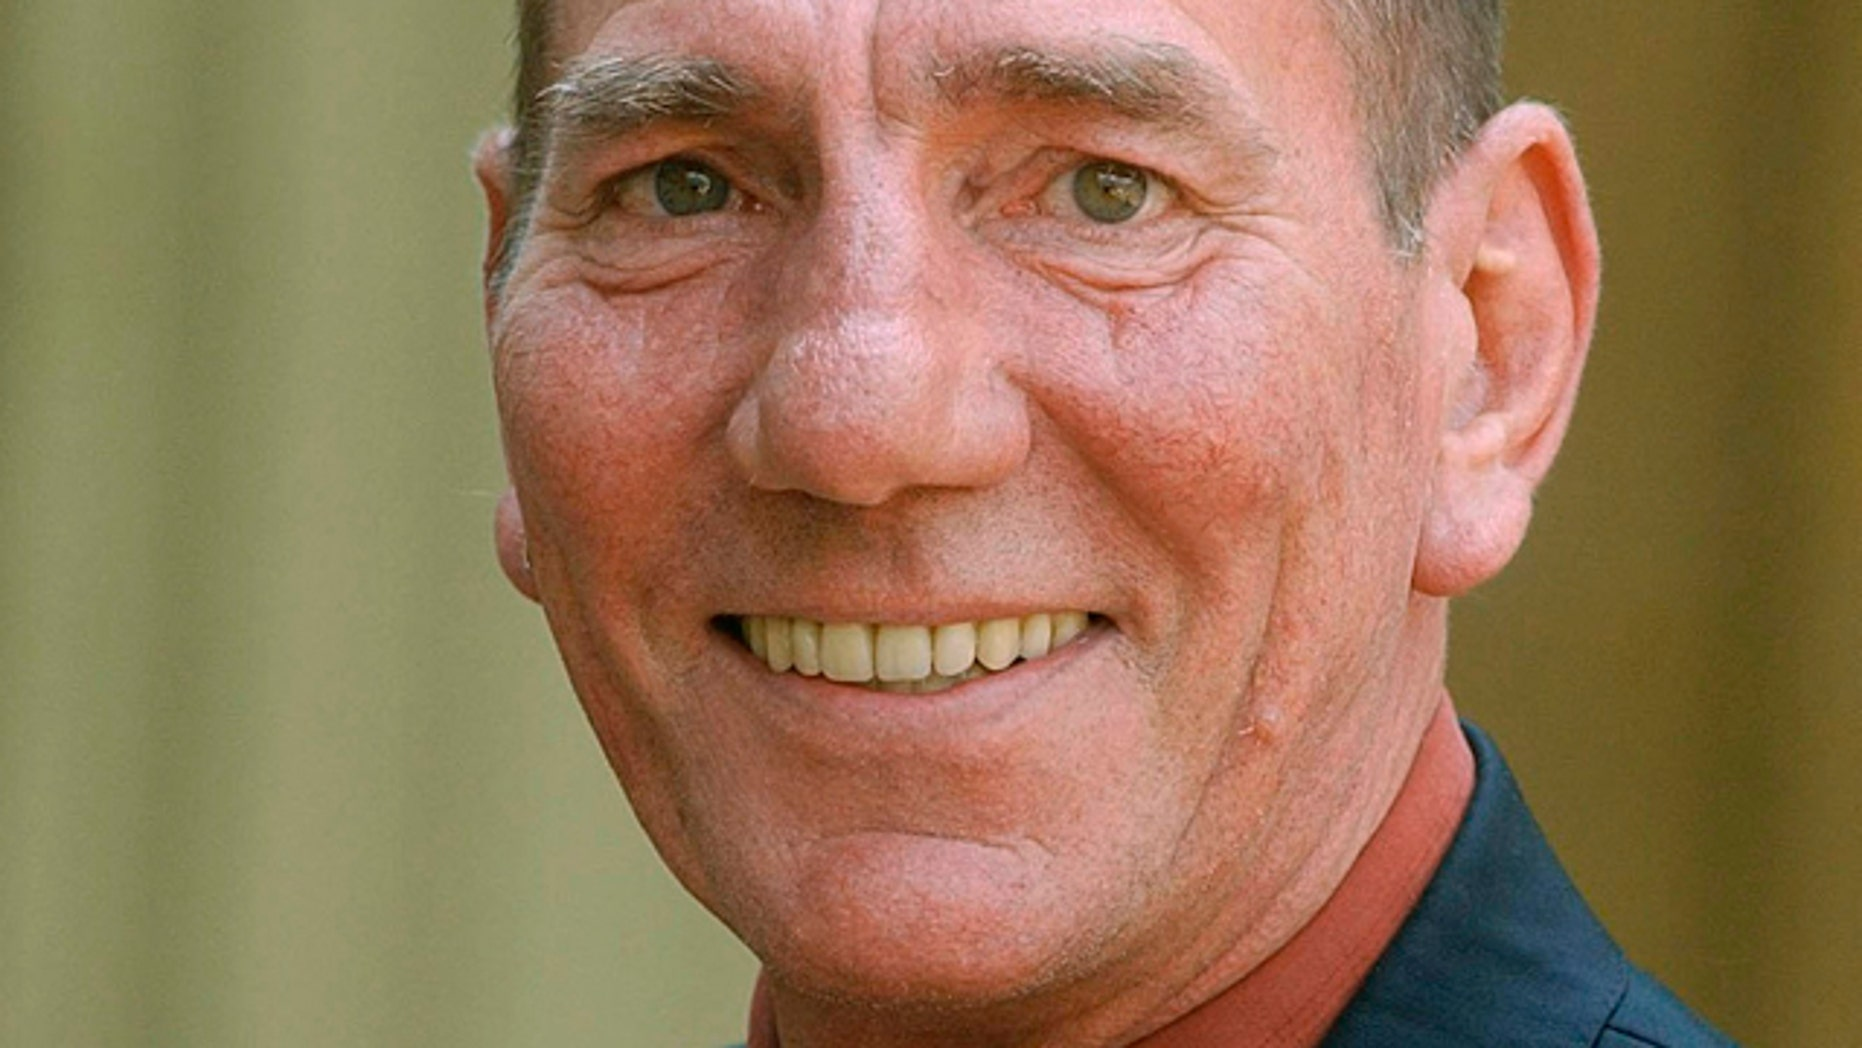 Pete Postlethwaite, who was nominated for an Oscar for his role in 'In the Name of the Father,' has died at age 64.